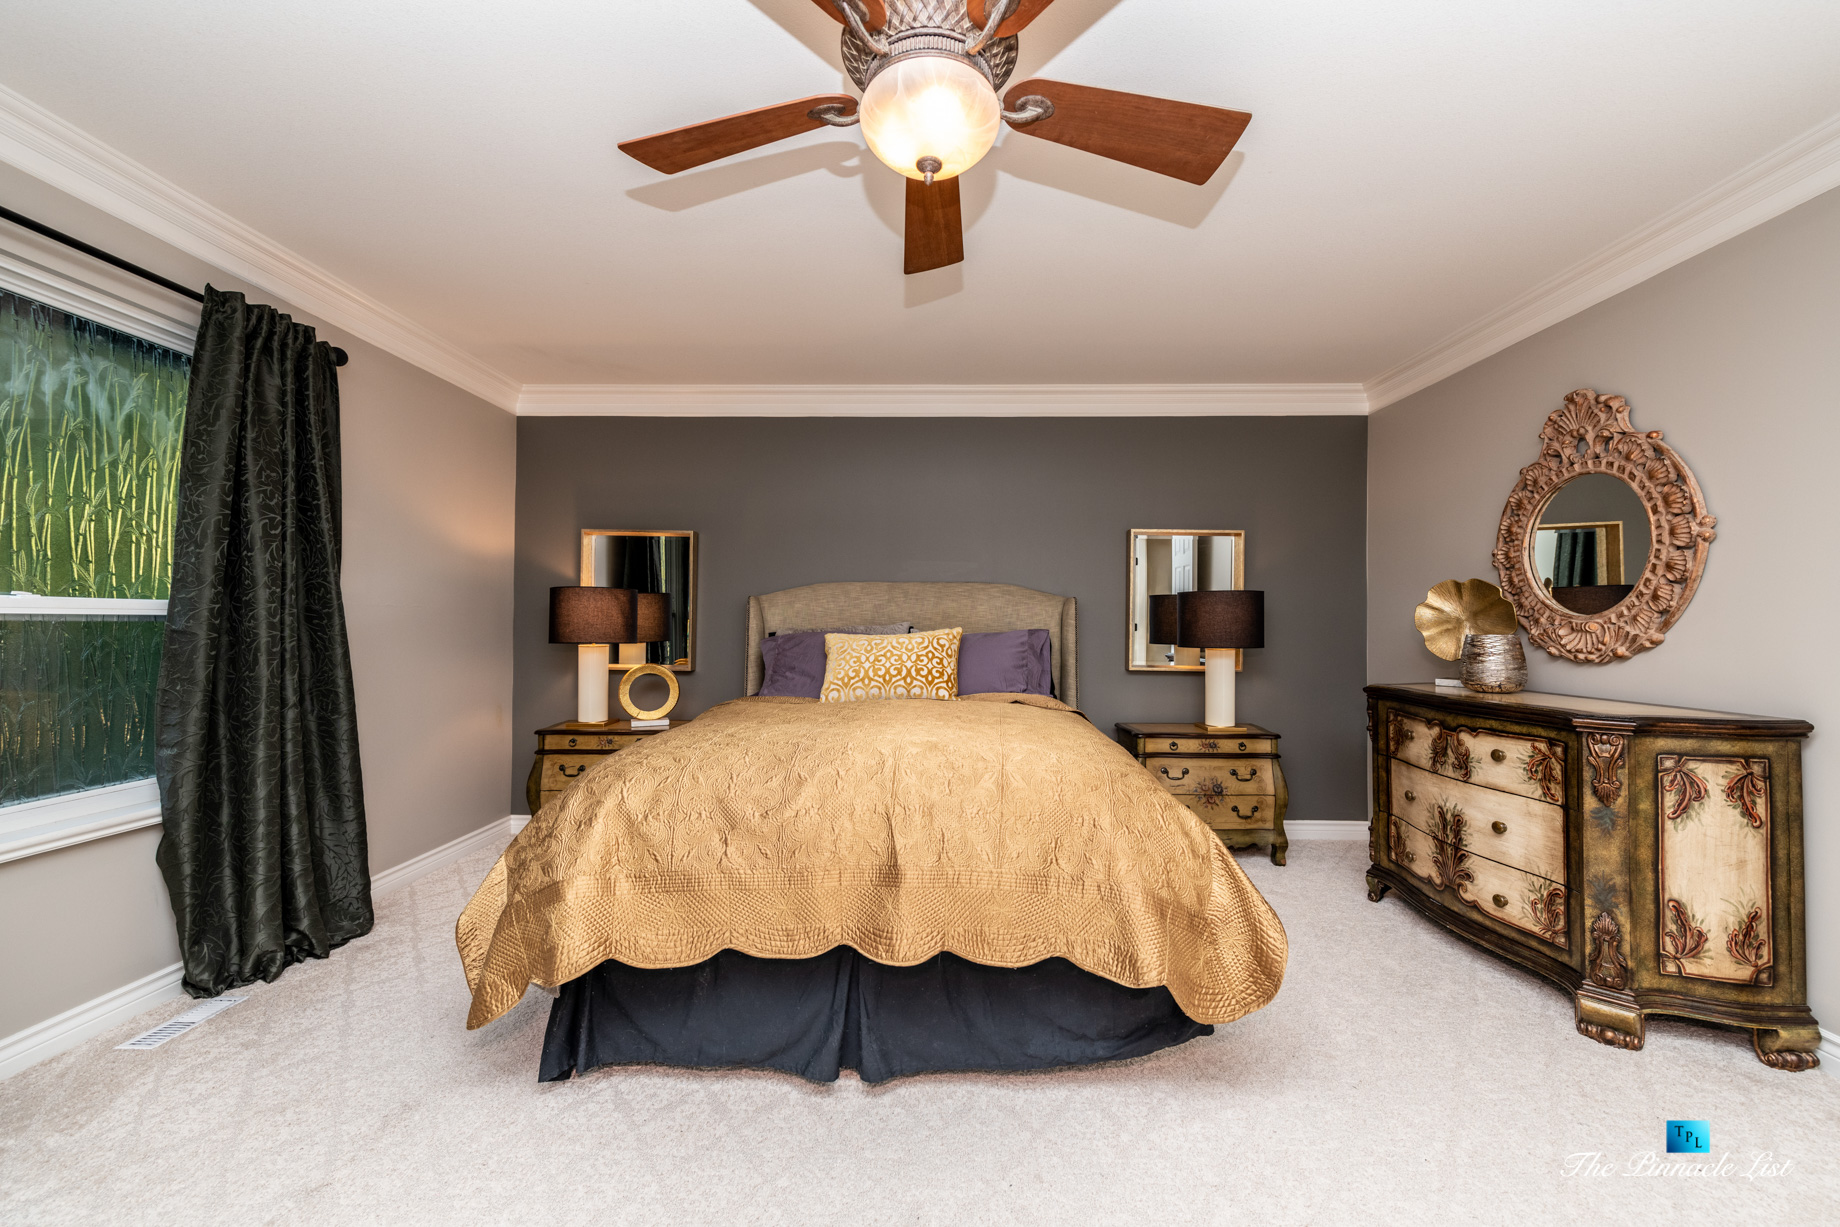 2366 Sunnyside Rd, Anmore, BC, Canada - Master Bedroom